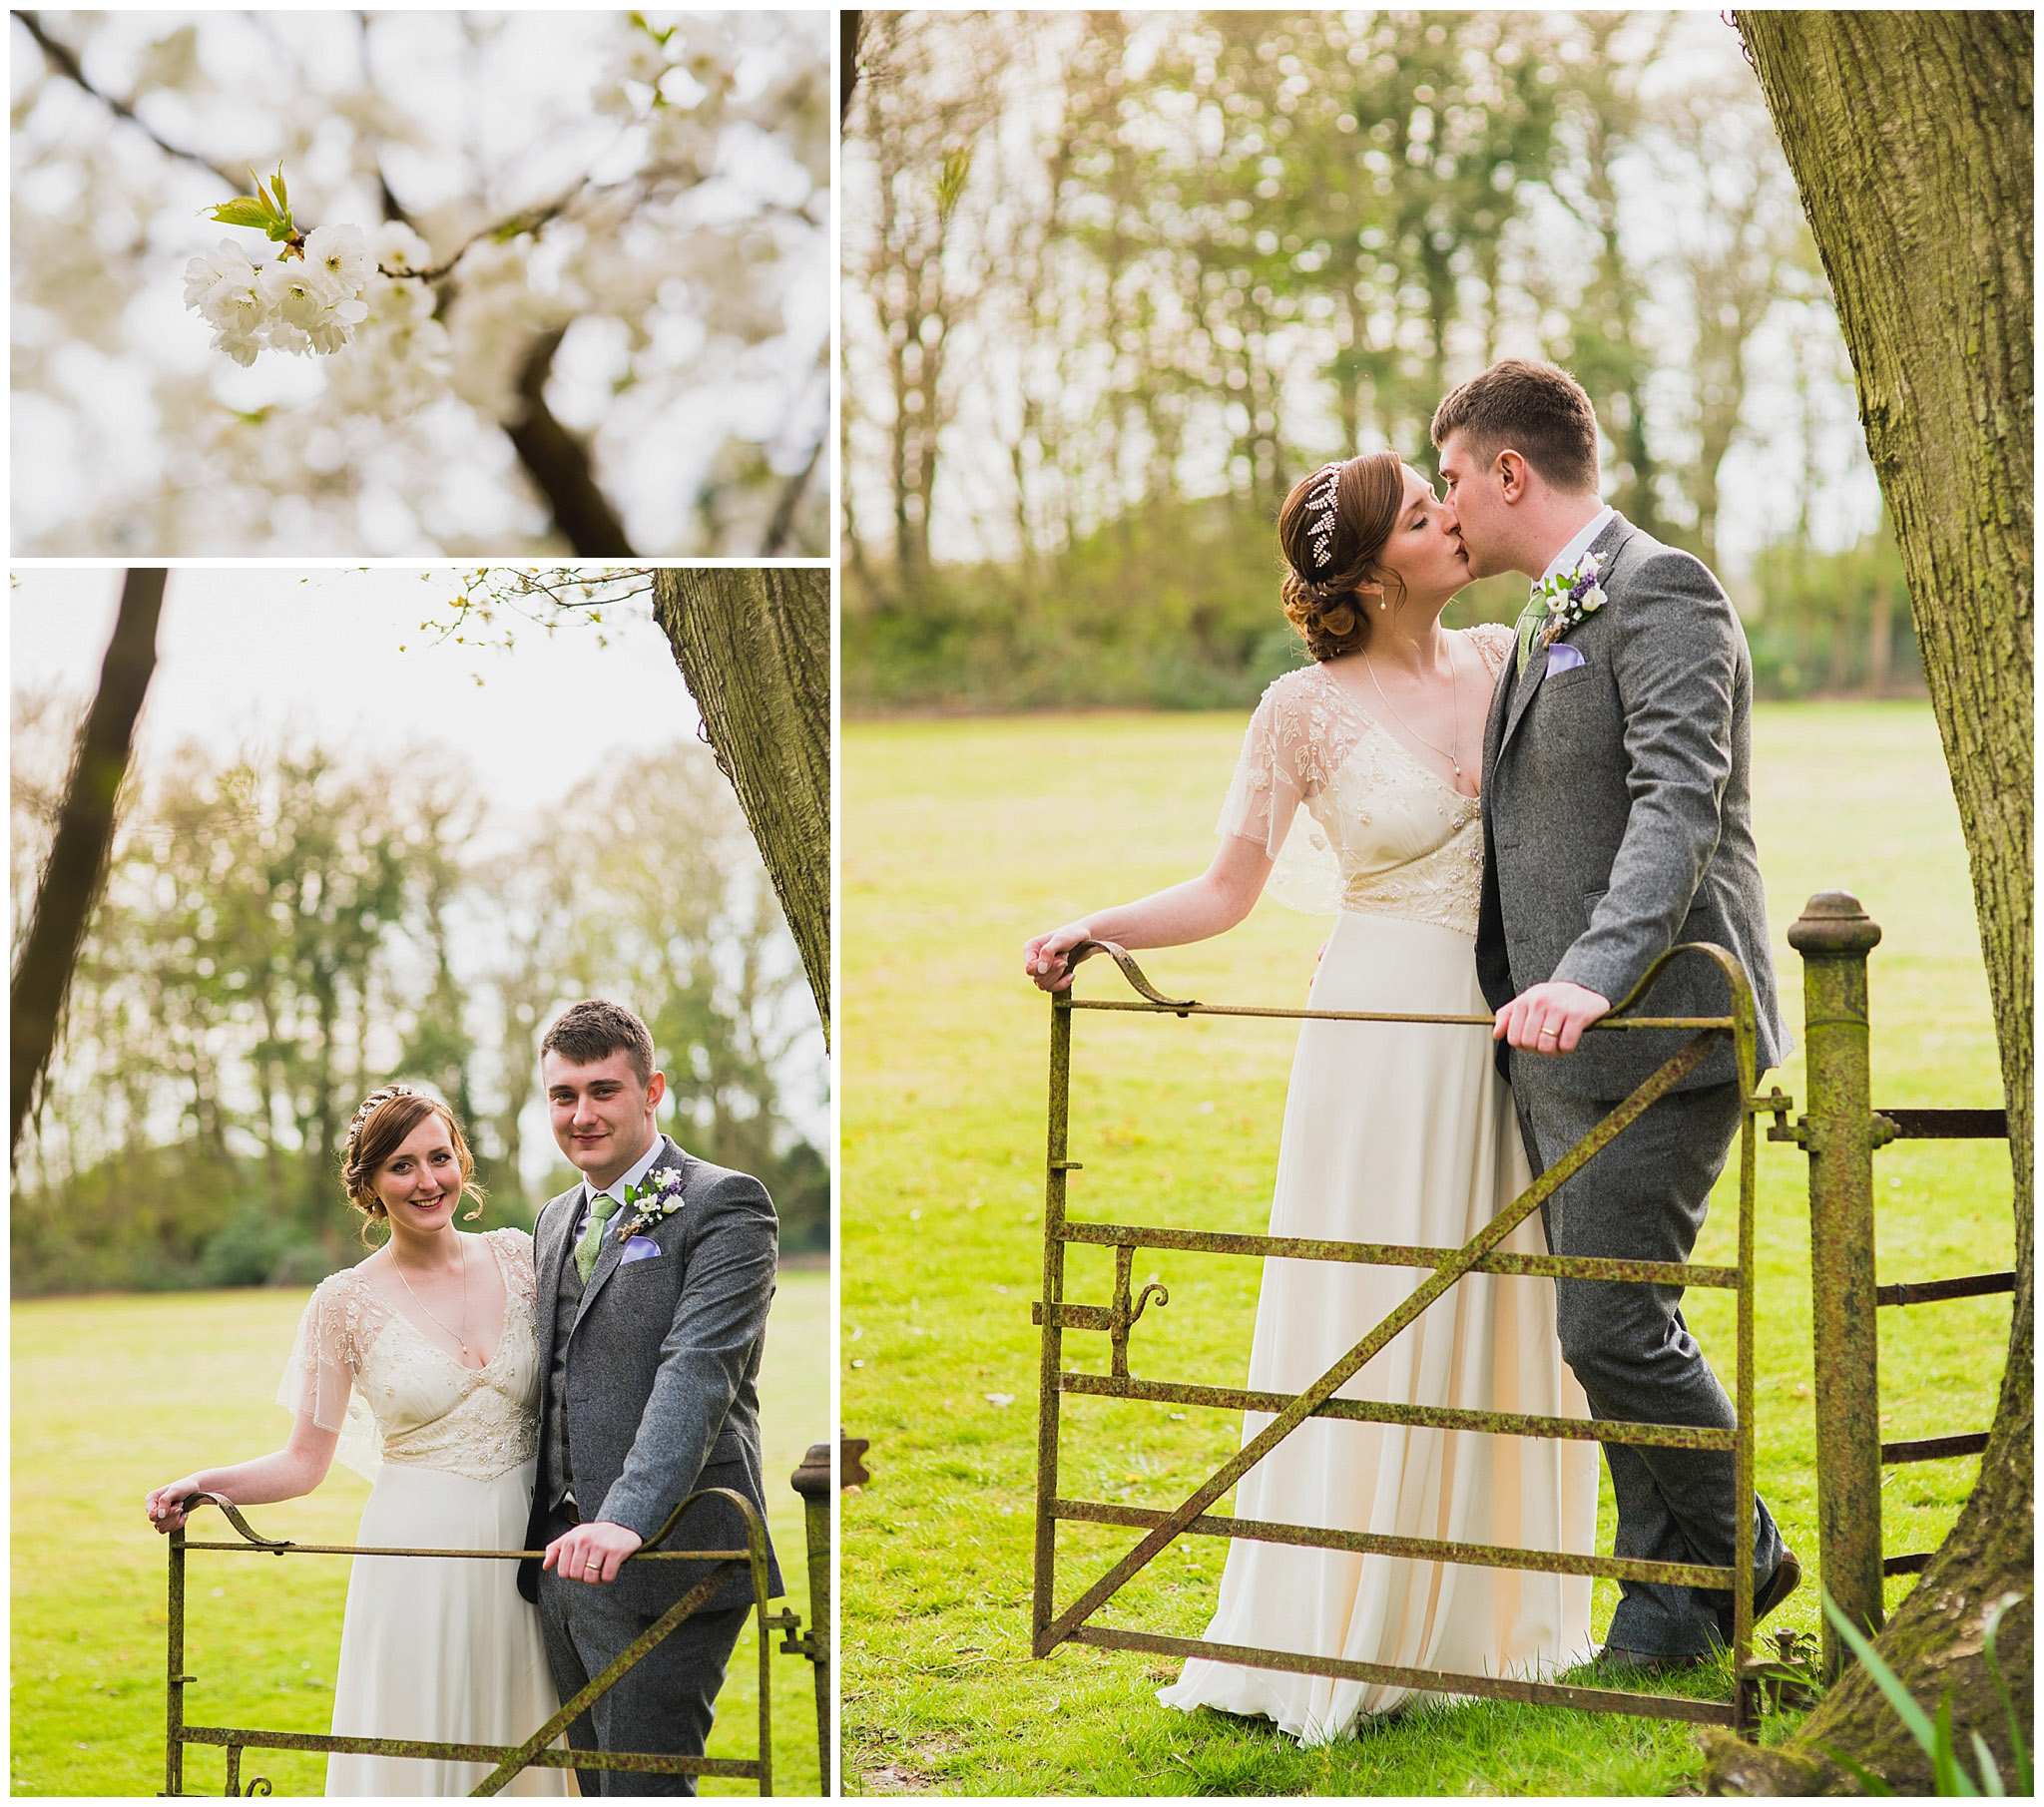 Sarah-&-Dan-The-Old-Vicarage-Wedding-Venue-Dorset-Photographer-38